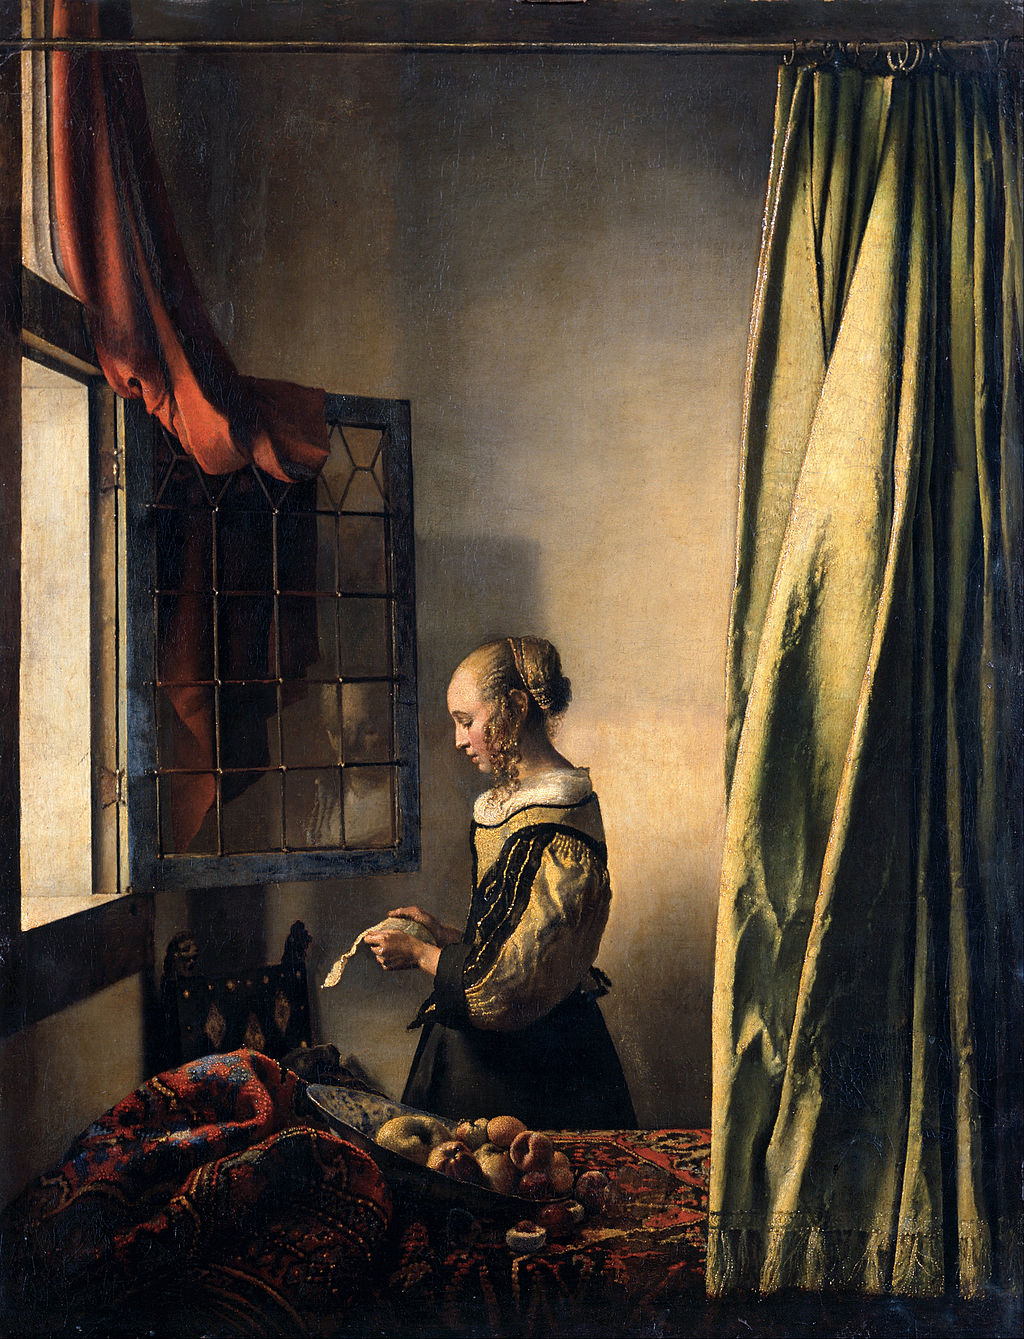 Johannes_Vermeer_-_Girl_Reading_a_Letter_by_an_Open_Window_-_Google_Art_Project